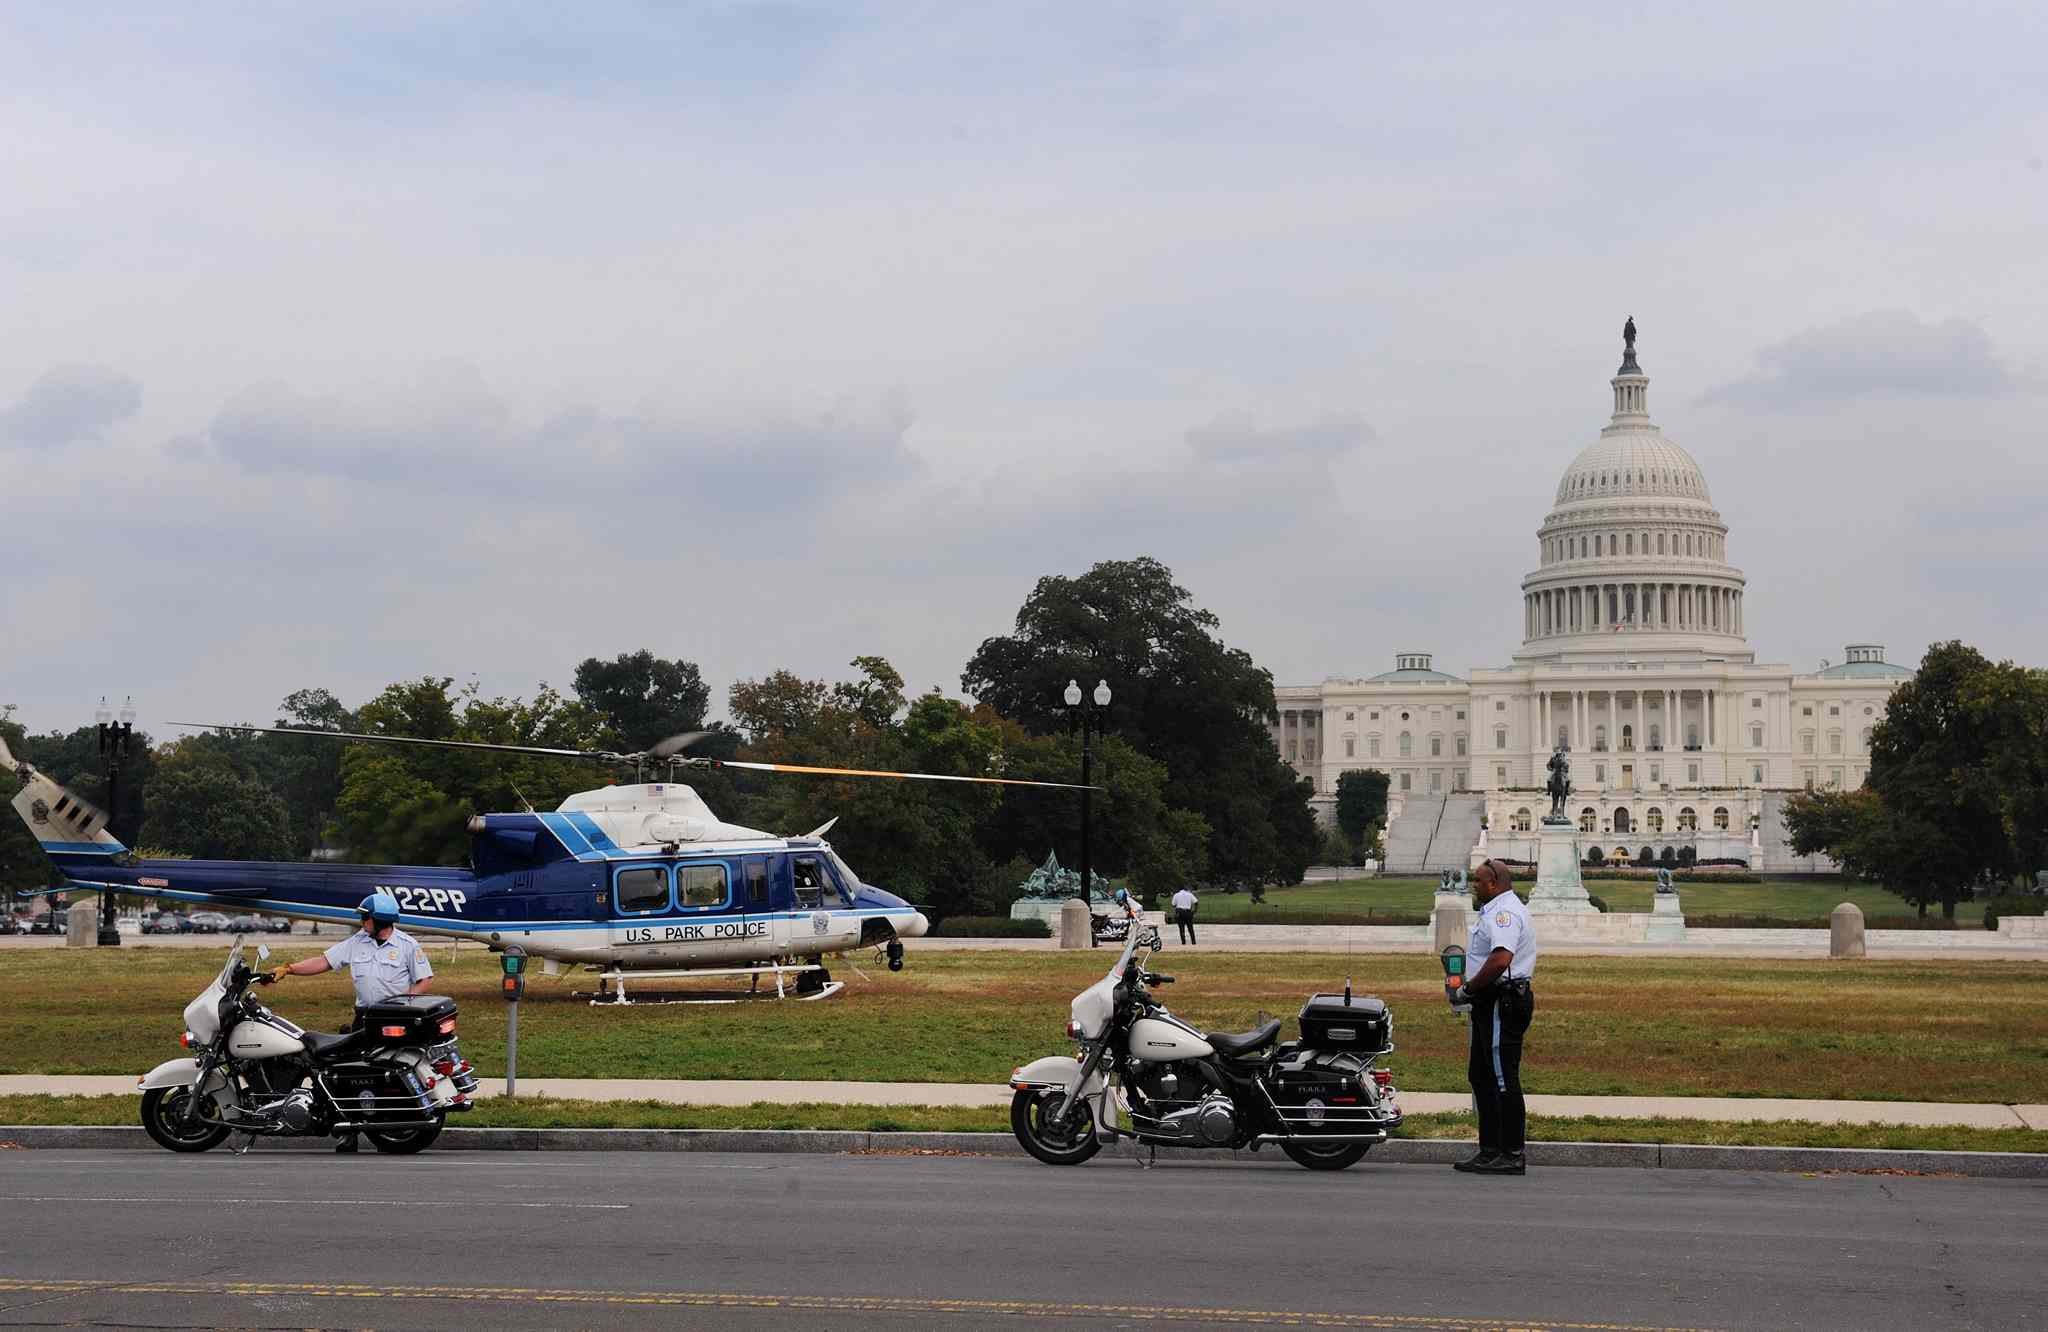 A police helicopter sits on the grass near the U.S. Capitol.